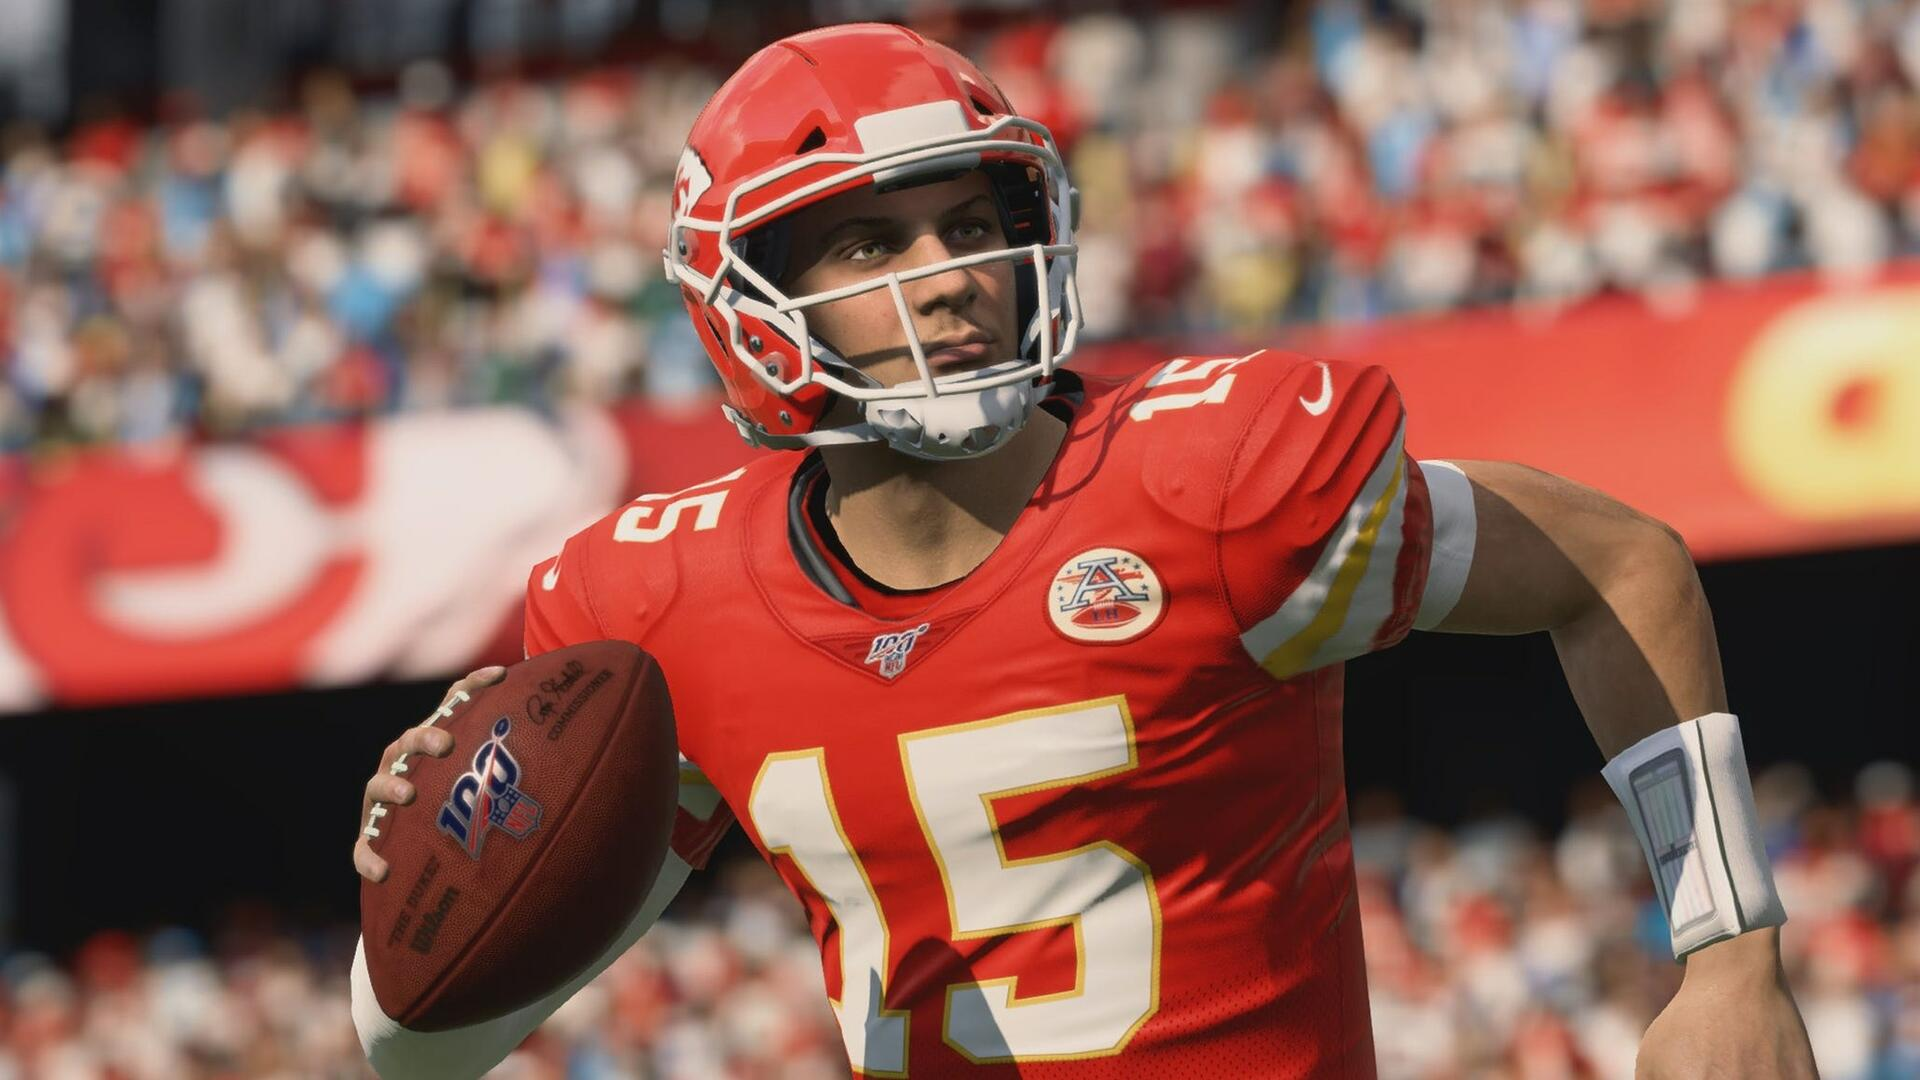 Madden 20 Money Plays - All the Best Madden 20 Offensive Money Plays